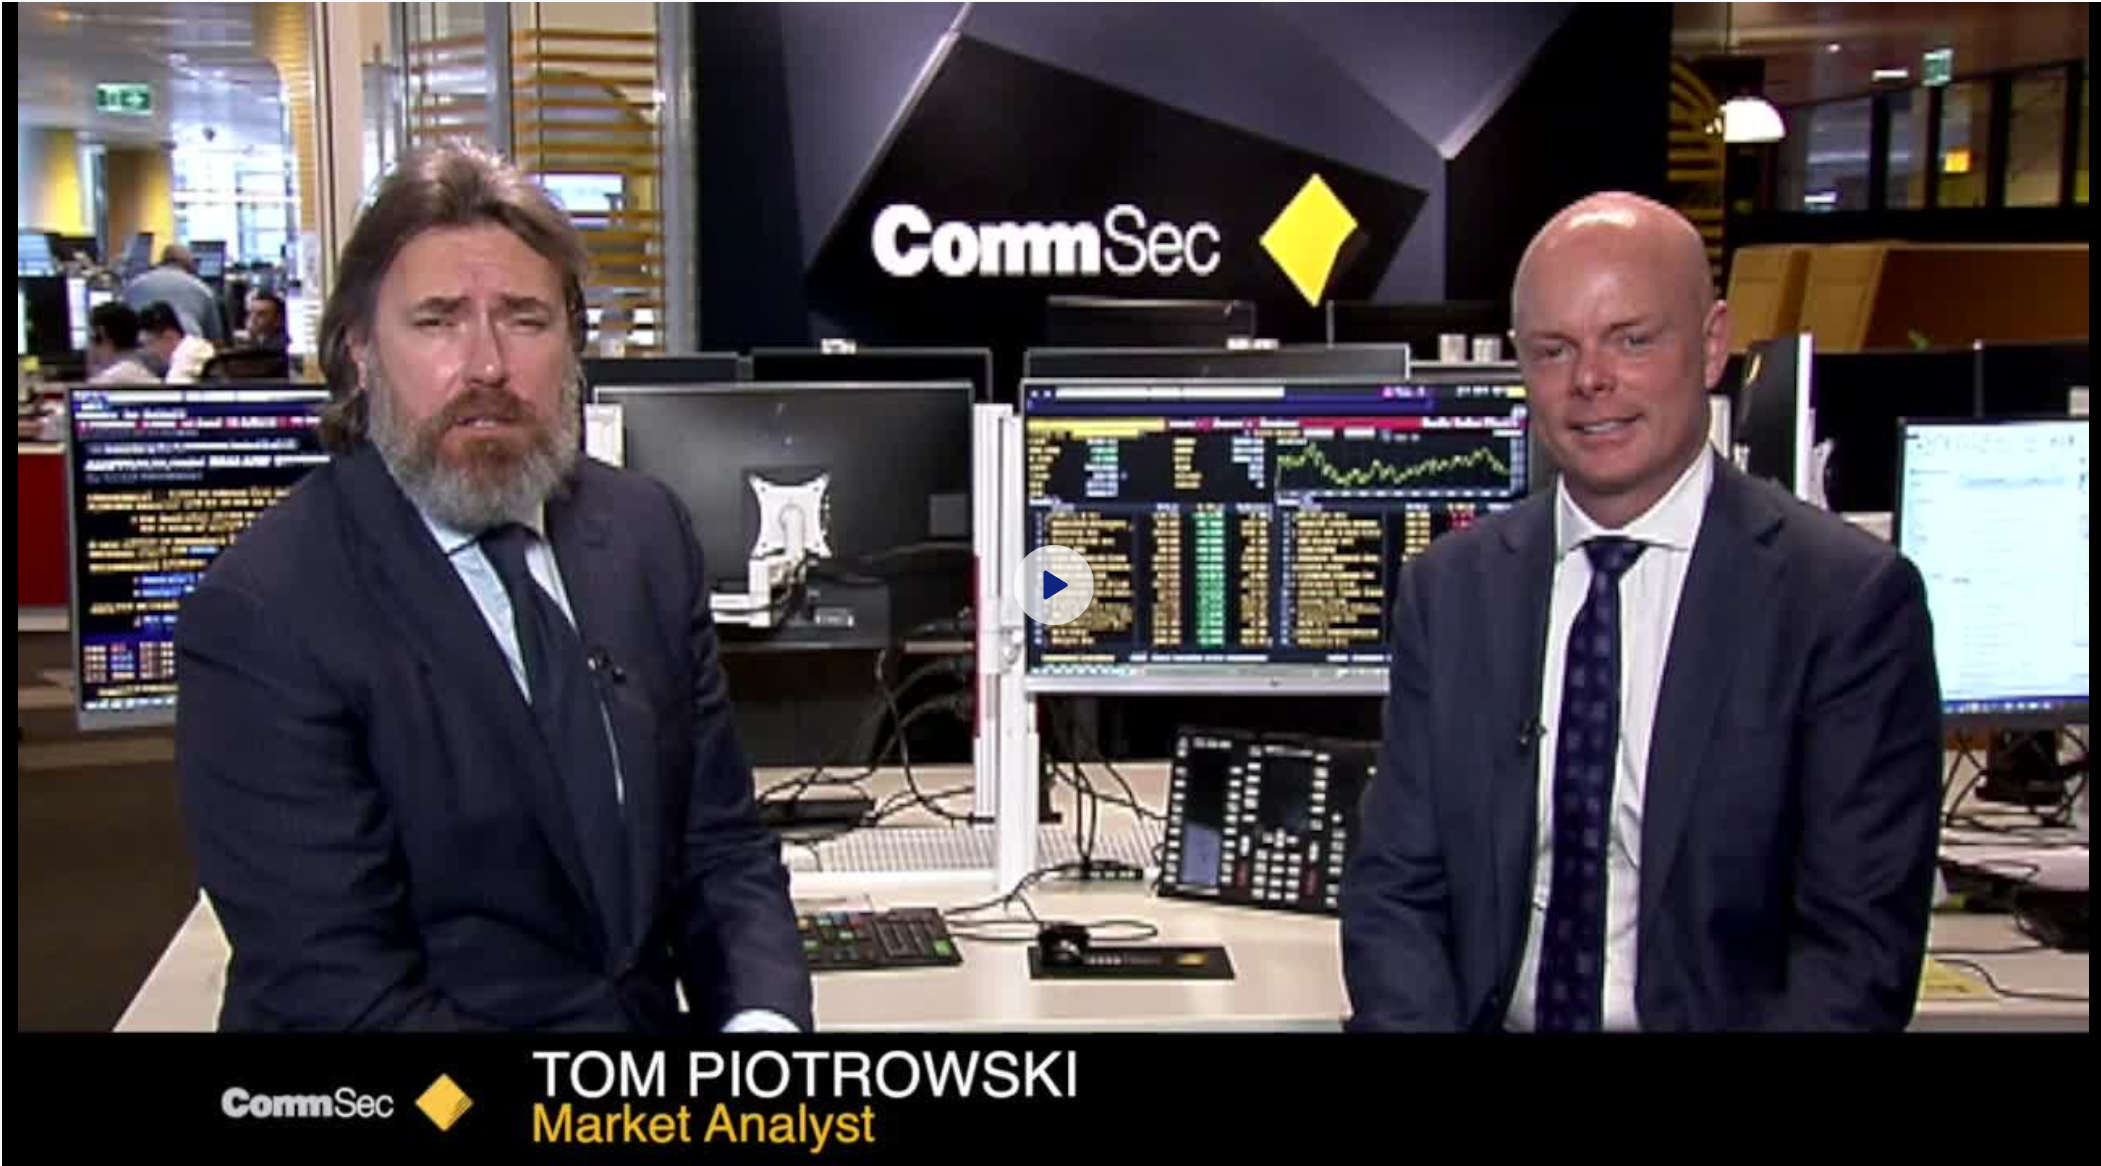 CommSec 'The Executive Series' interview